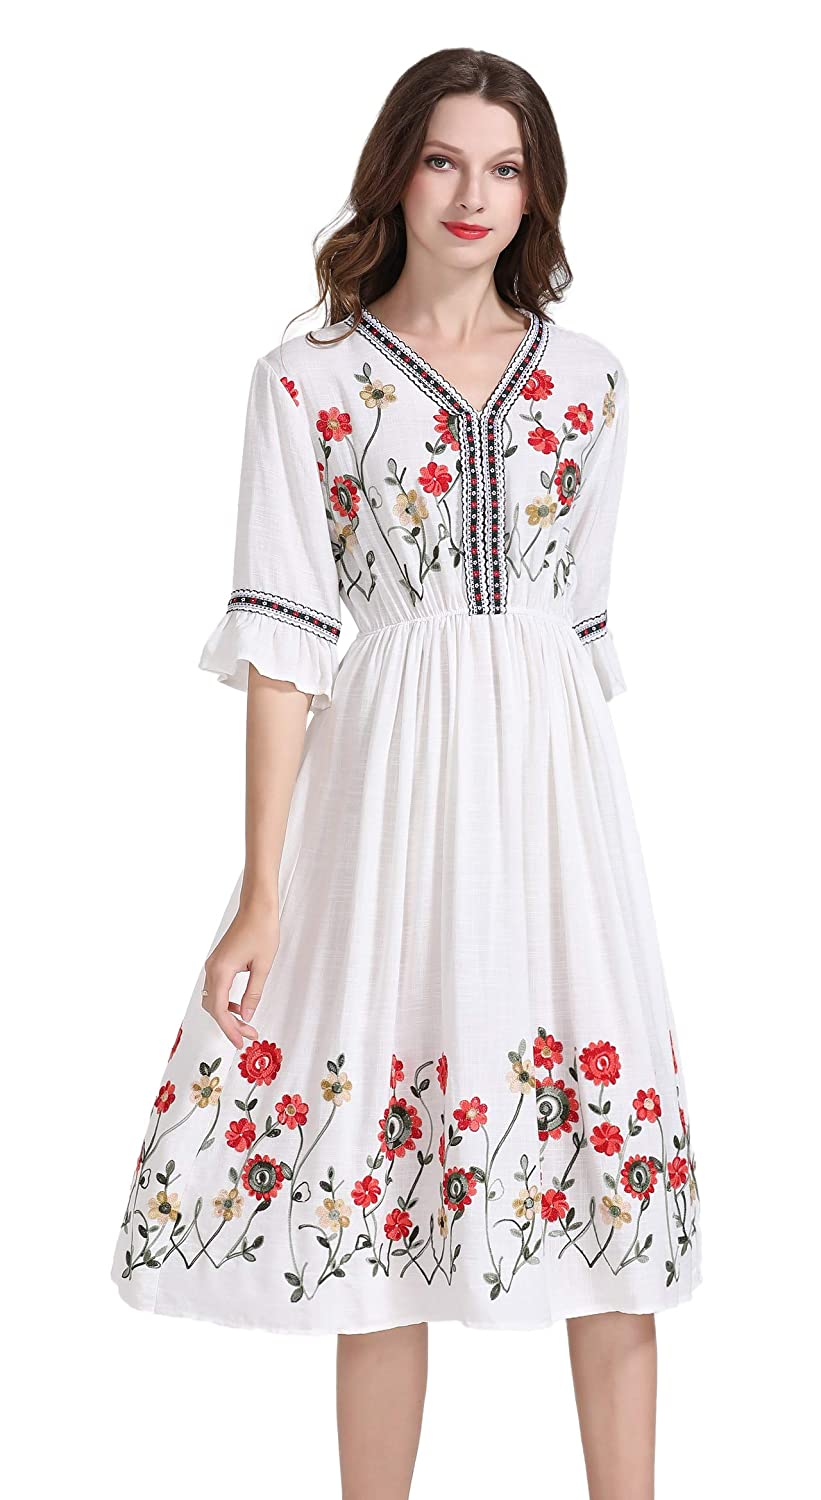 Old Fashioned Dresses | Old Dress Styles Womens Short Sleeve Mexican Embroidered Floral Pleated Midi A-line Cocktail Dress $26.99 AT vintagedancer.com